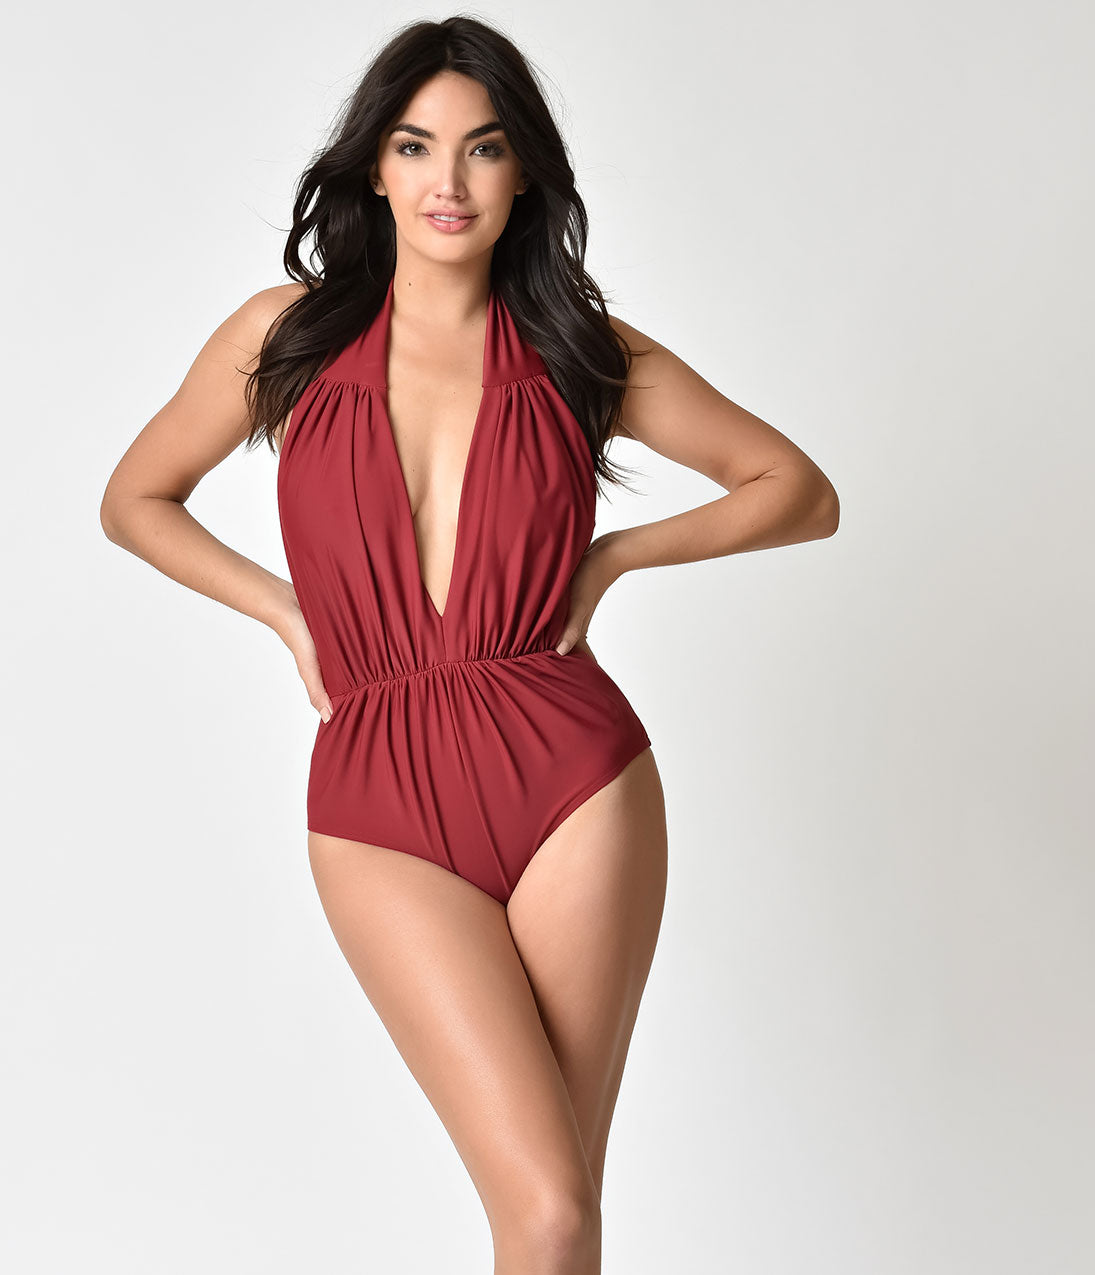 60s Style: How to Recreate the Outfits Unique Vintage Burgundy Red Halter Shirred Derek One Piece Swimsuit $68.00 AT vintagedancer.com